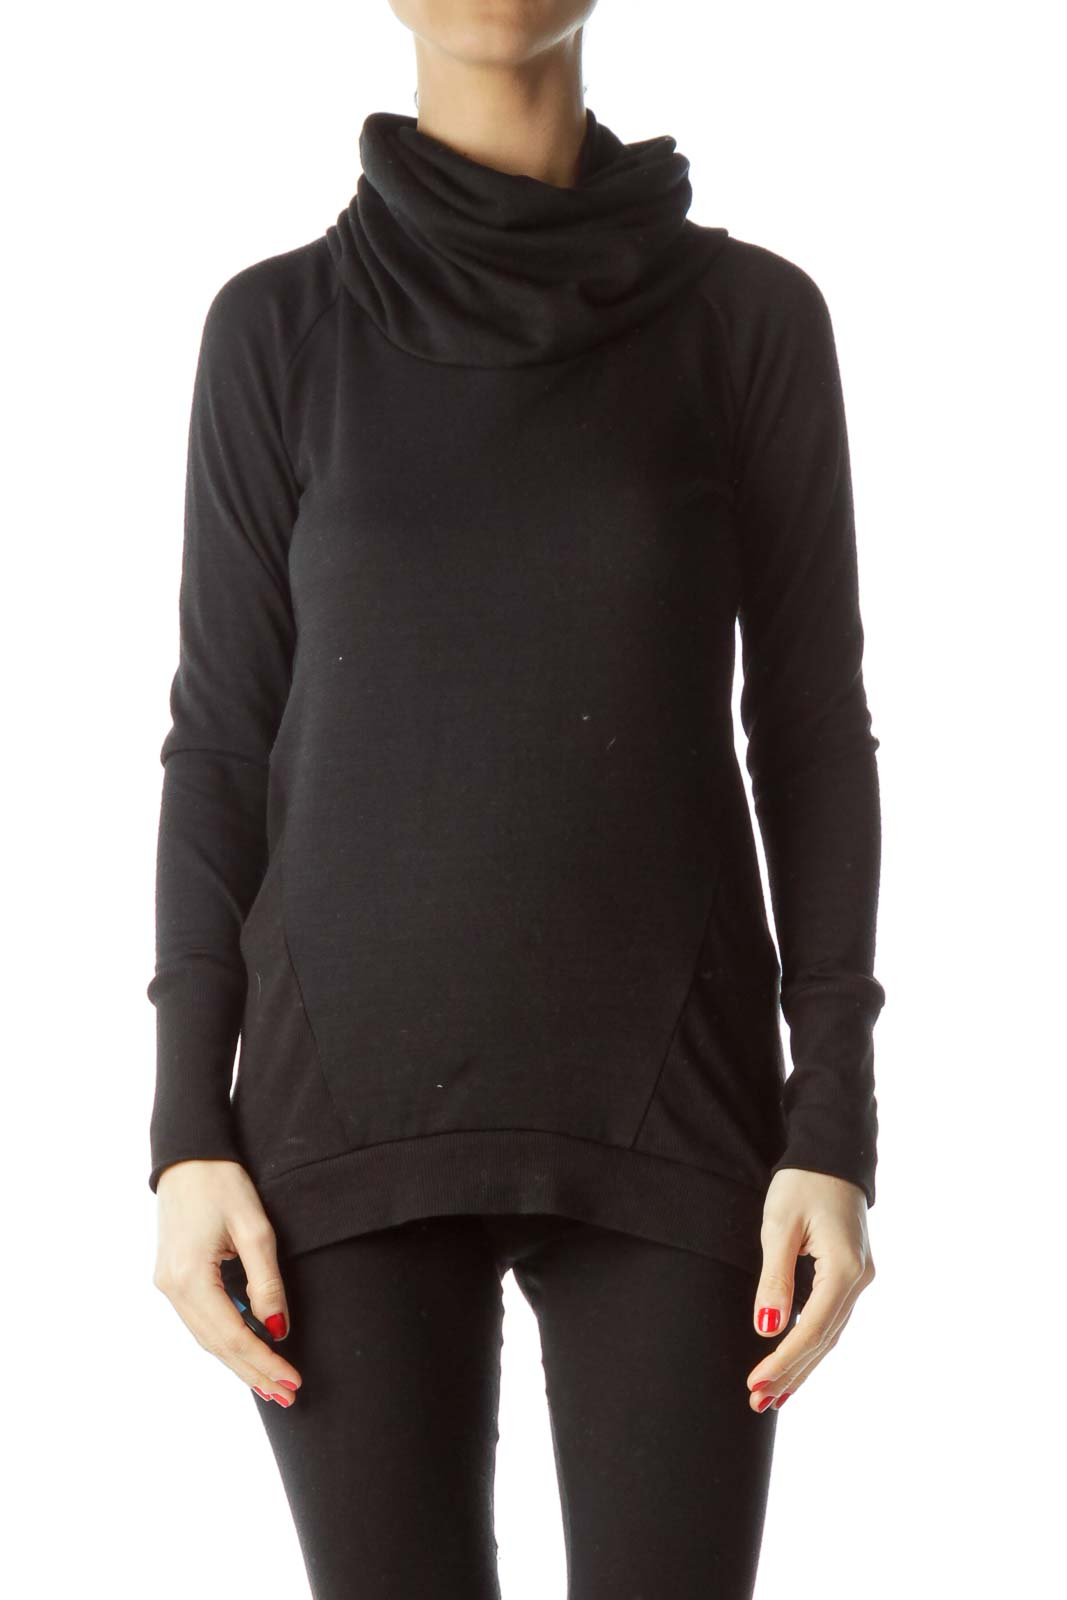 Black Cowl-Neck Long-Sleeve Thumbhole Knit Top Front